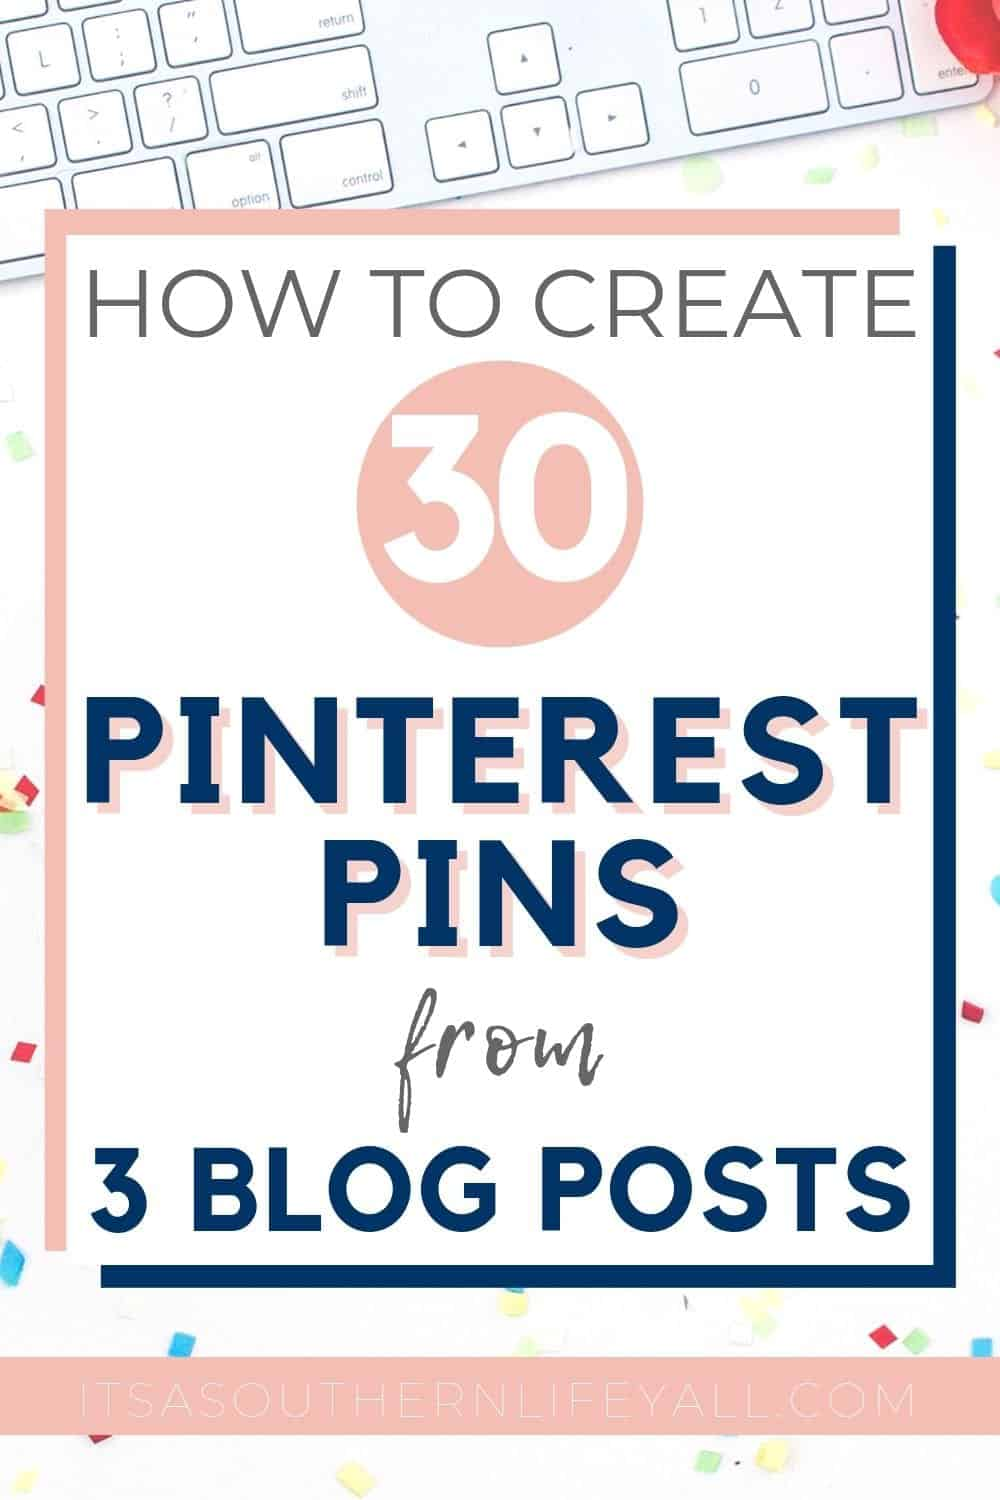 How to Create 30 Pinterest Pins from 3 Blog Posts